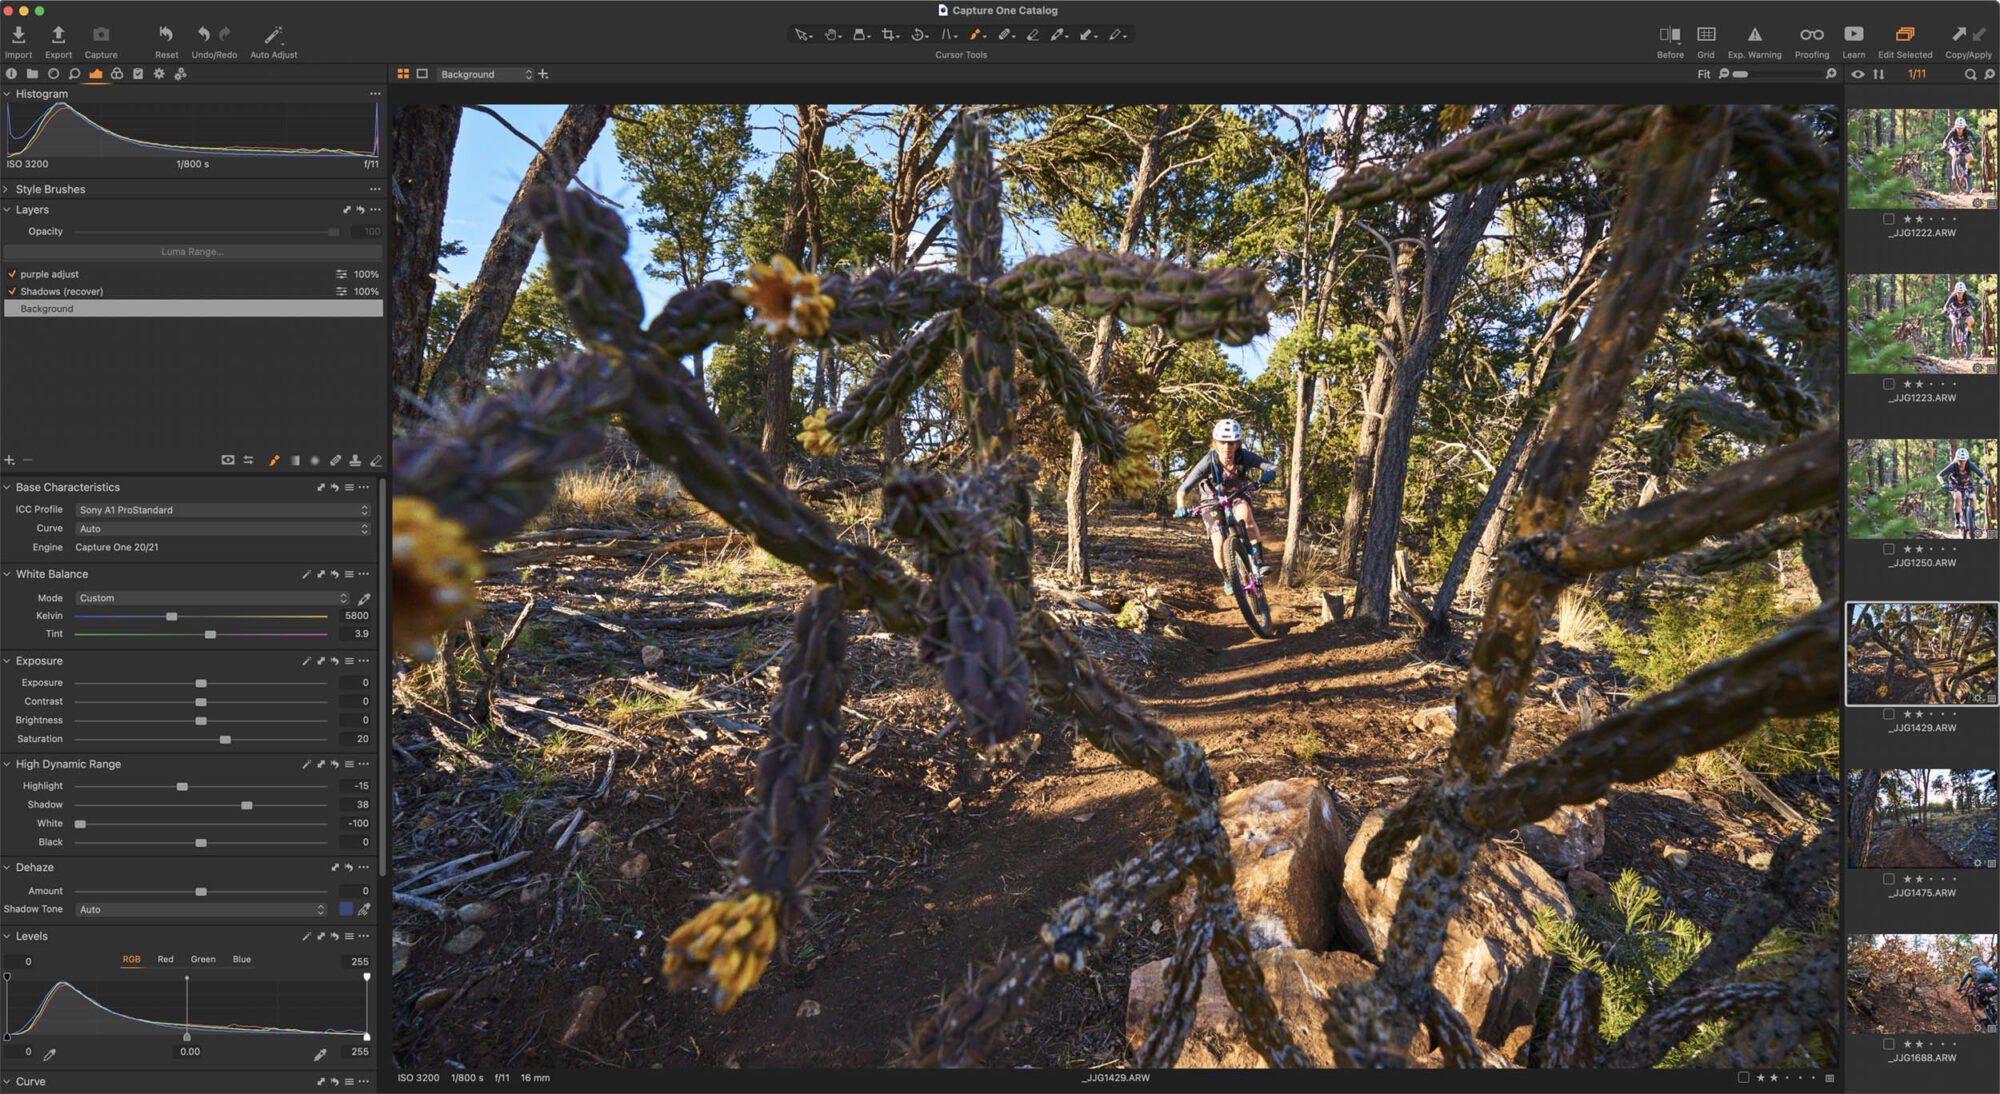 8 Reasons Capture One is the Best Image Editor screenshot by Jay Goodrich